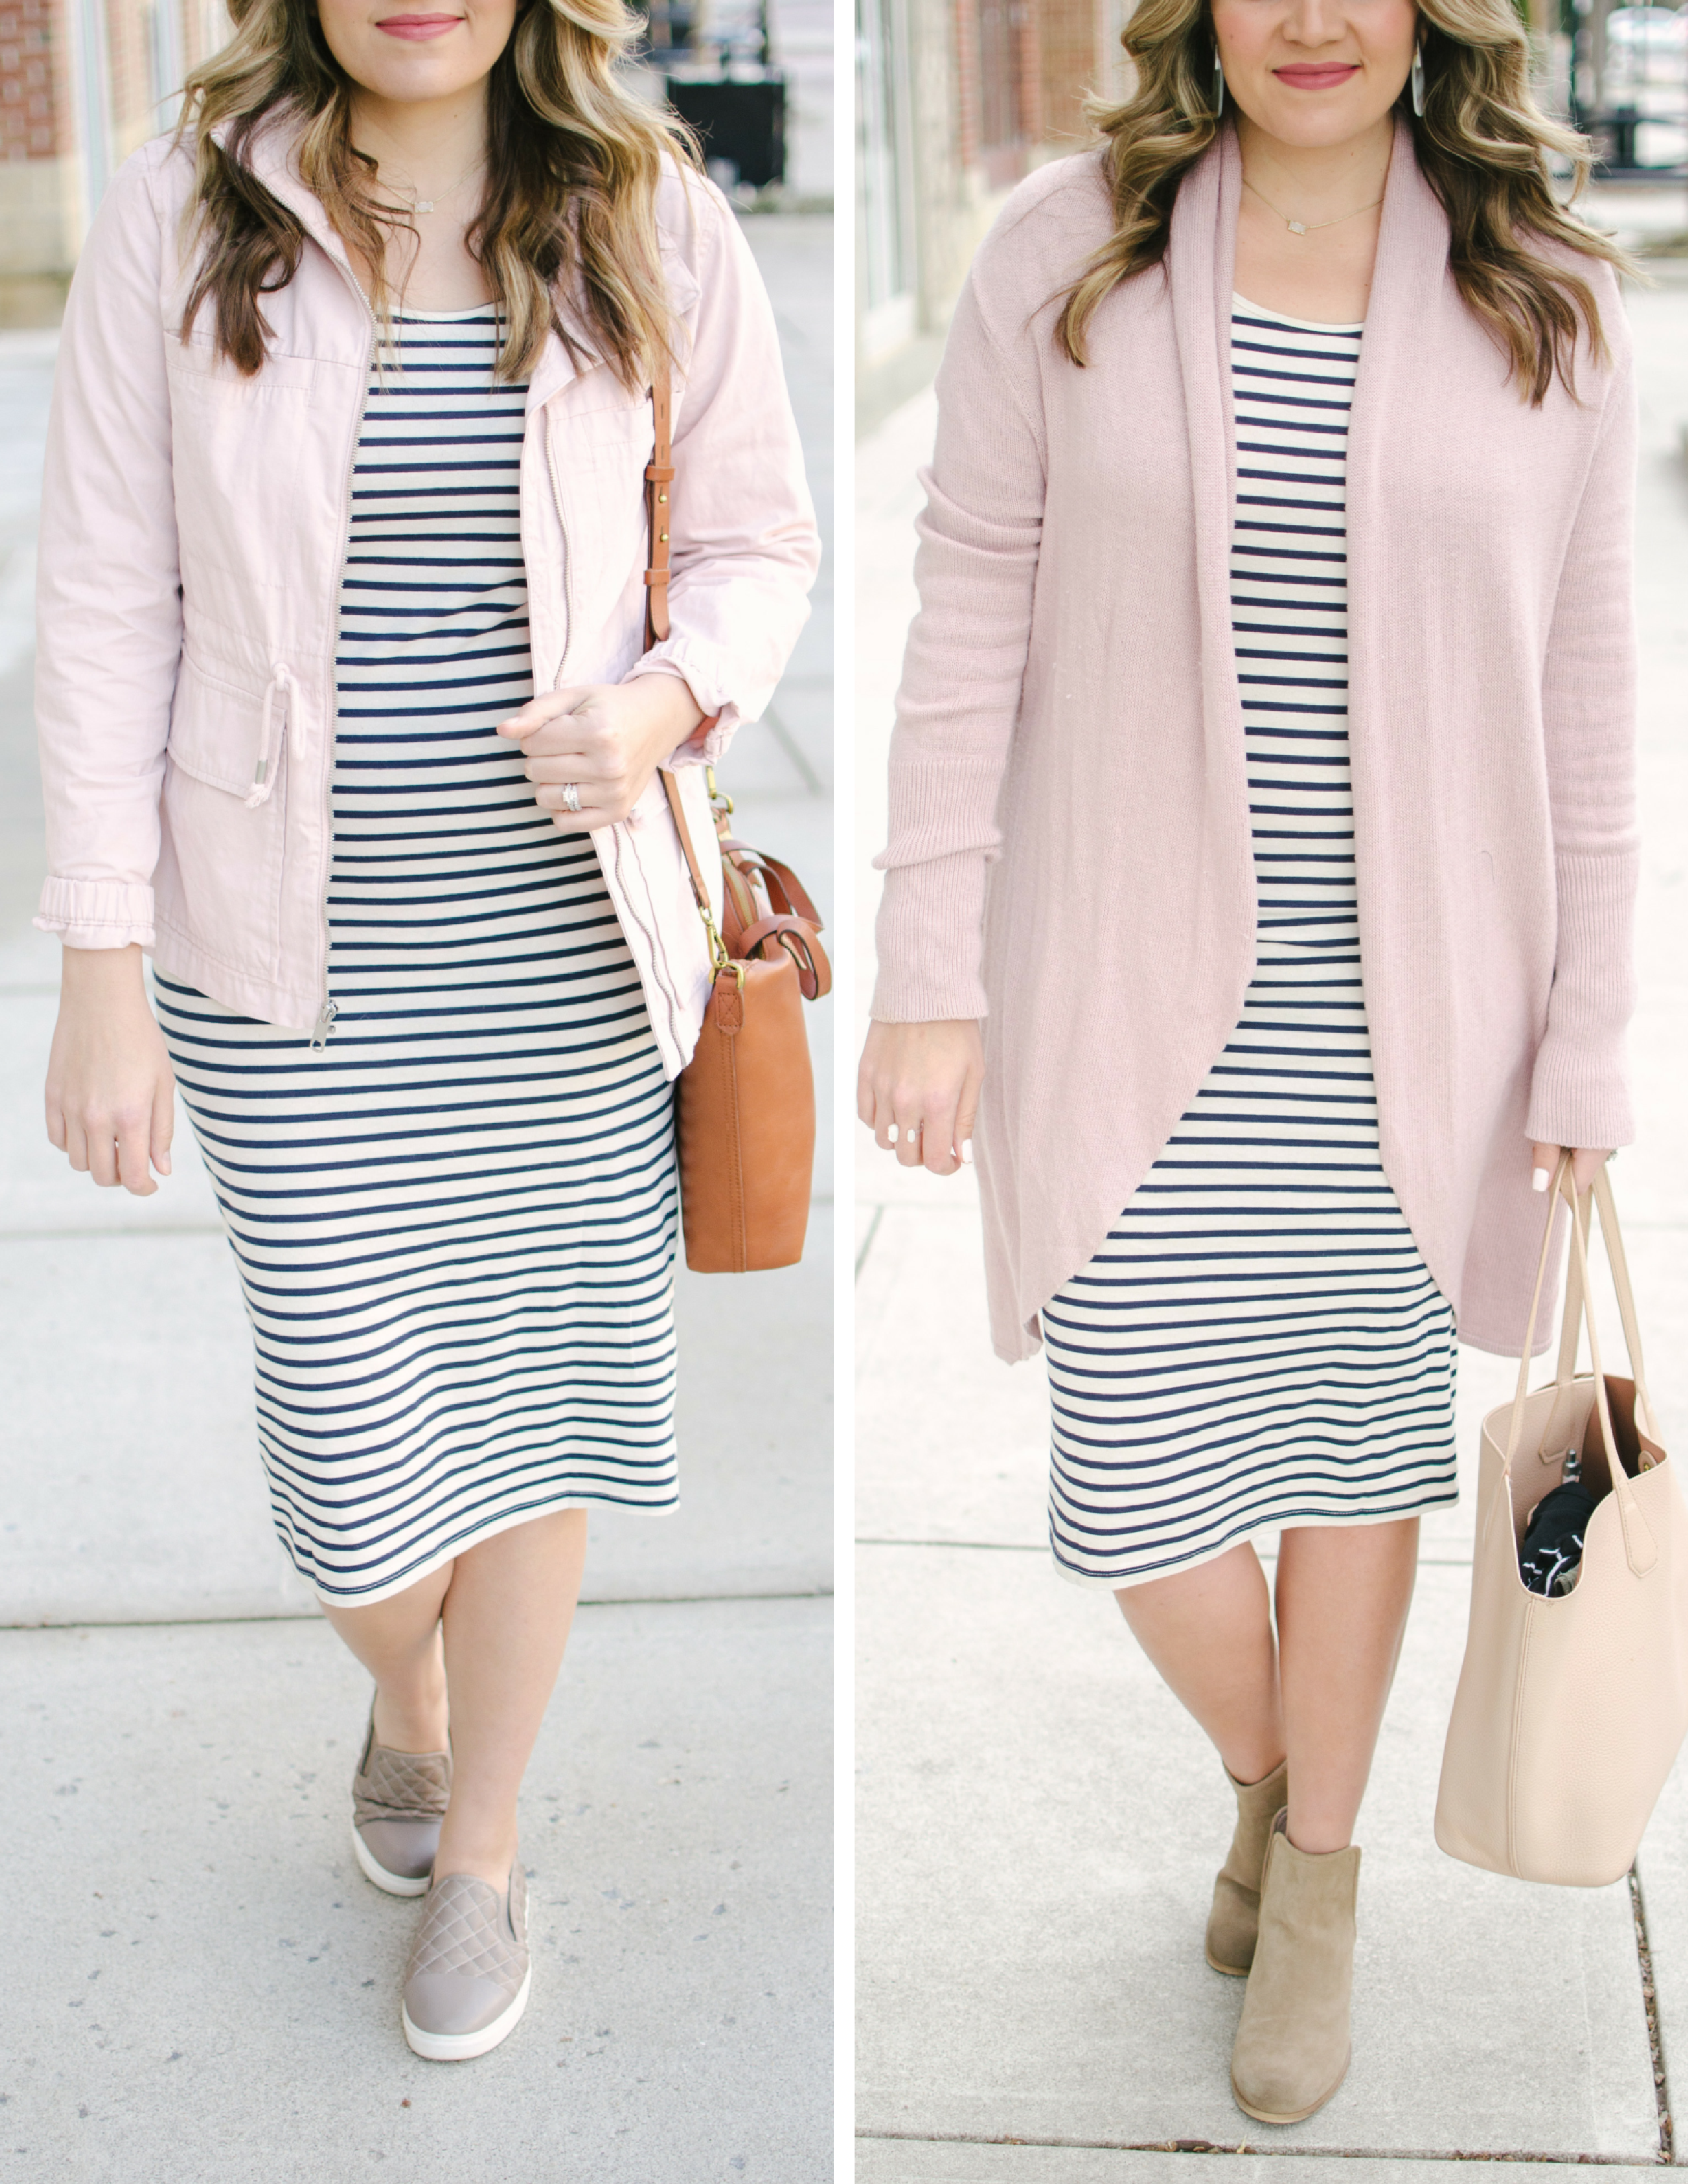 two ways to wear a striped dress - spring maternity outfits | Shop these looks or see more cute maternity outfits at bylaurenm.com!